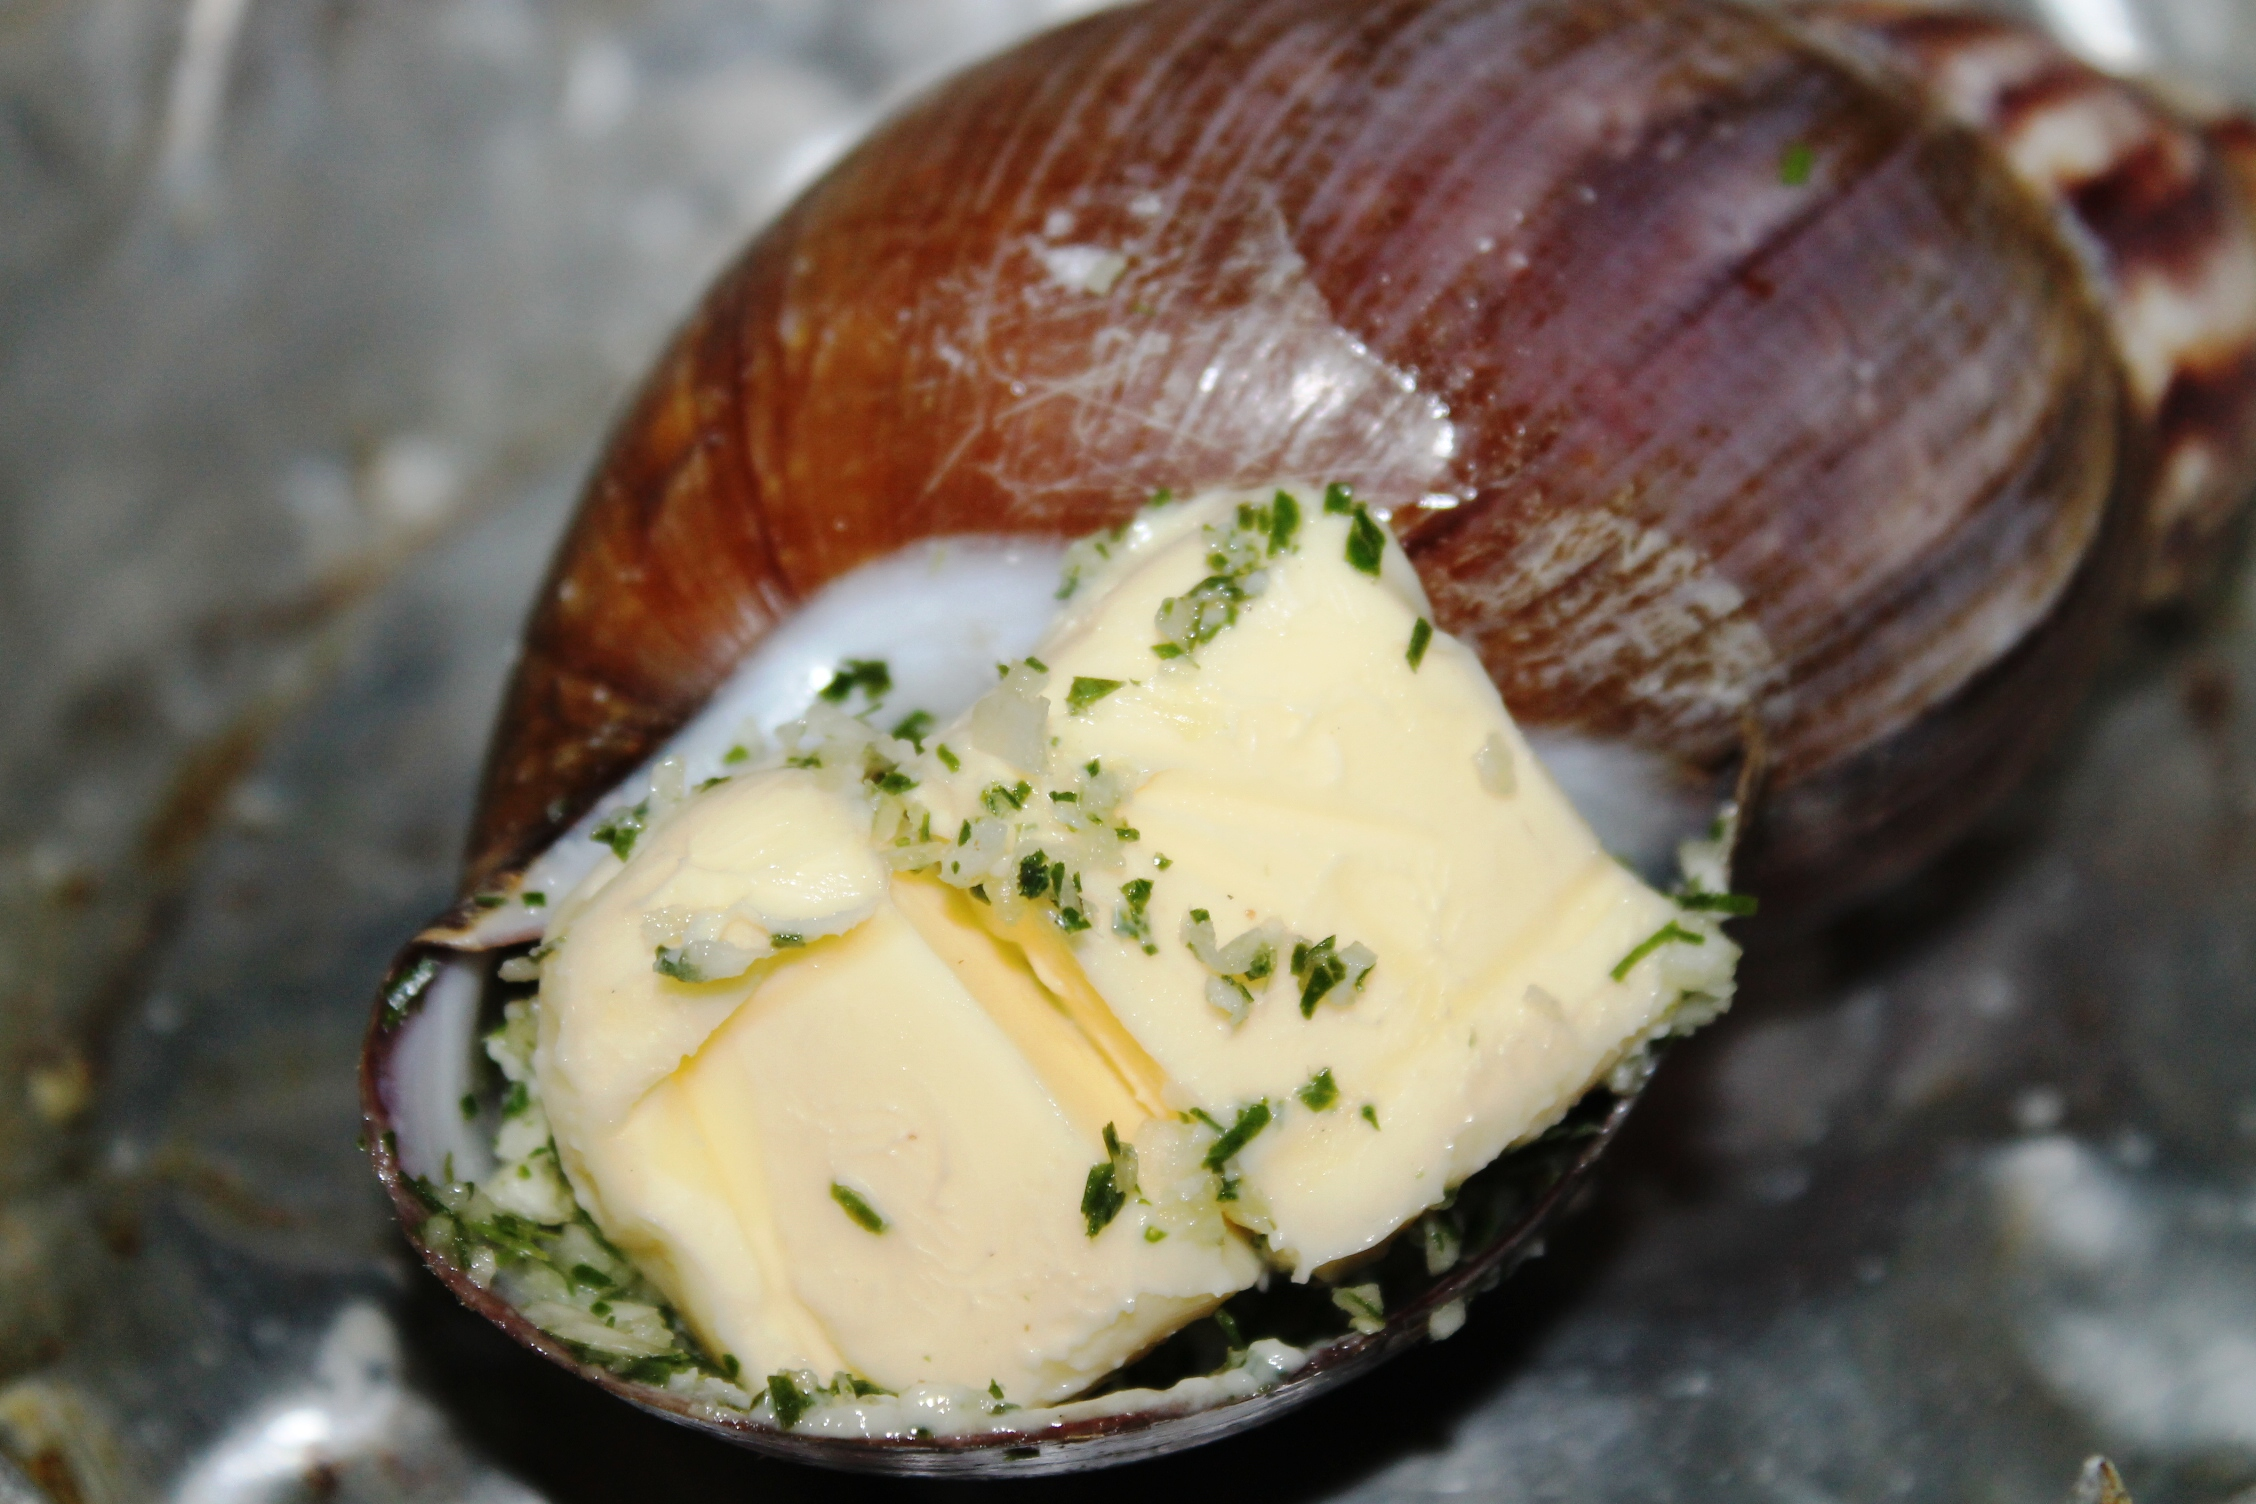 Recipe French Style Escargot Snail Butter Garlic Herbs Giant African Land Snail besides A French Food Vacation In Paris also Escargot Stuffed Mushrooms besides Lemon Sauce together with Food In Paris. on recipe for escargot